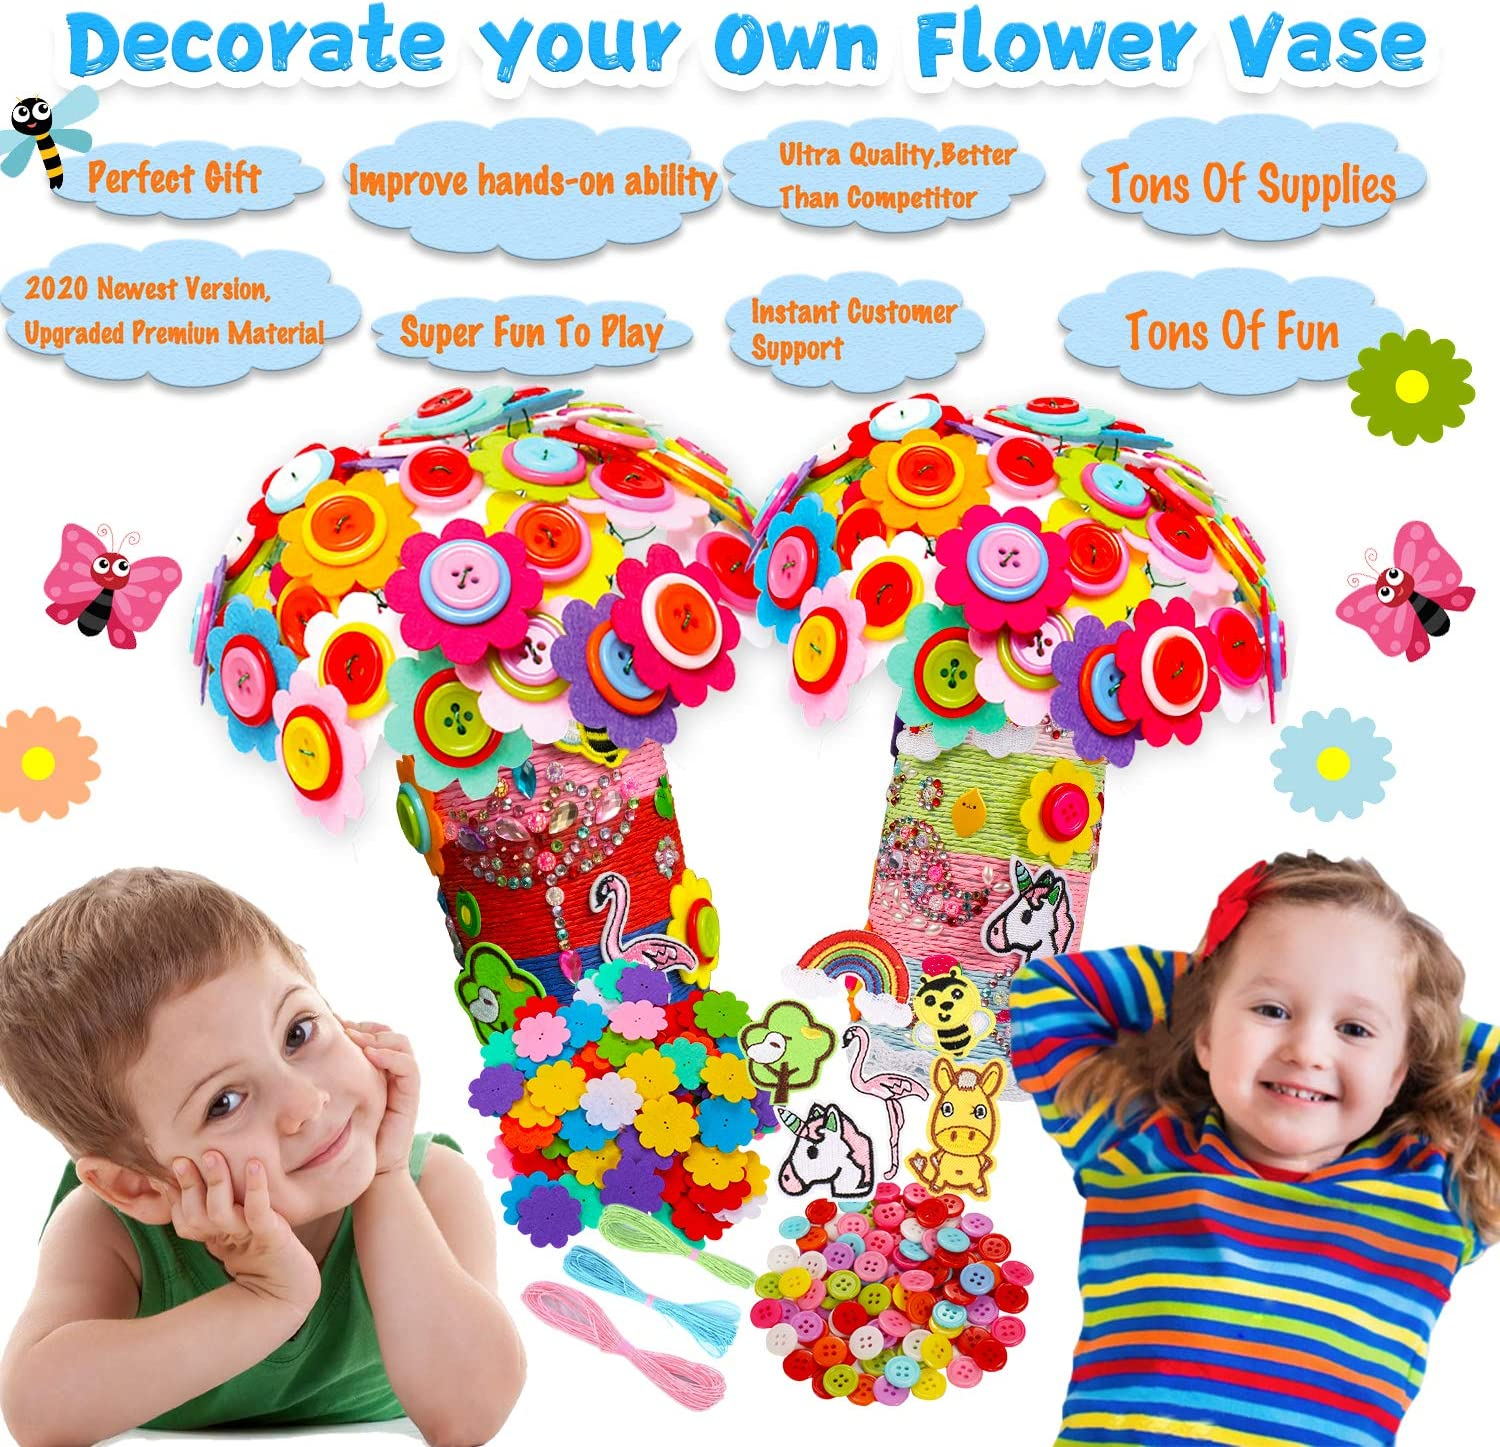 1pack Create Your Own Flower /& Vase DIY Craft Project for Boys /& Girls,Fun Gift for Children Age 4 5 6 7 8 9 Years Old,More Supplies with Tons of On Trend Stickers YOFUN Flower Craft Kit for Kids